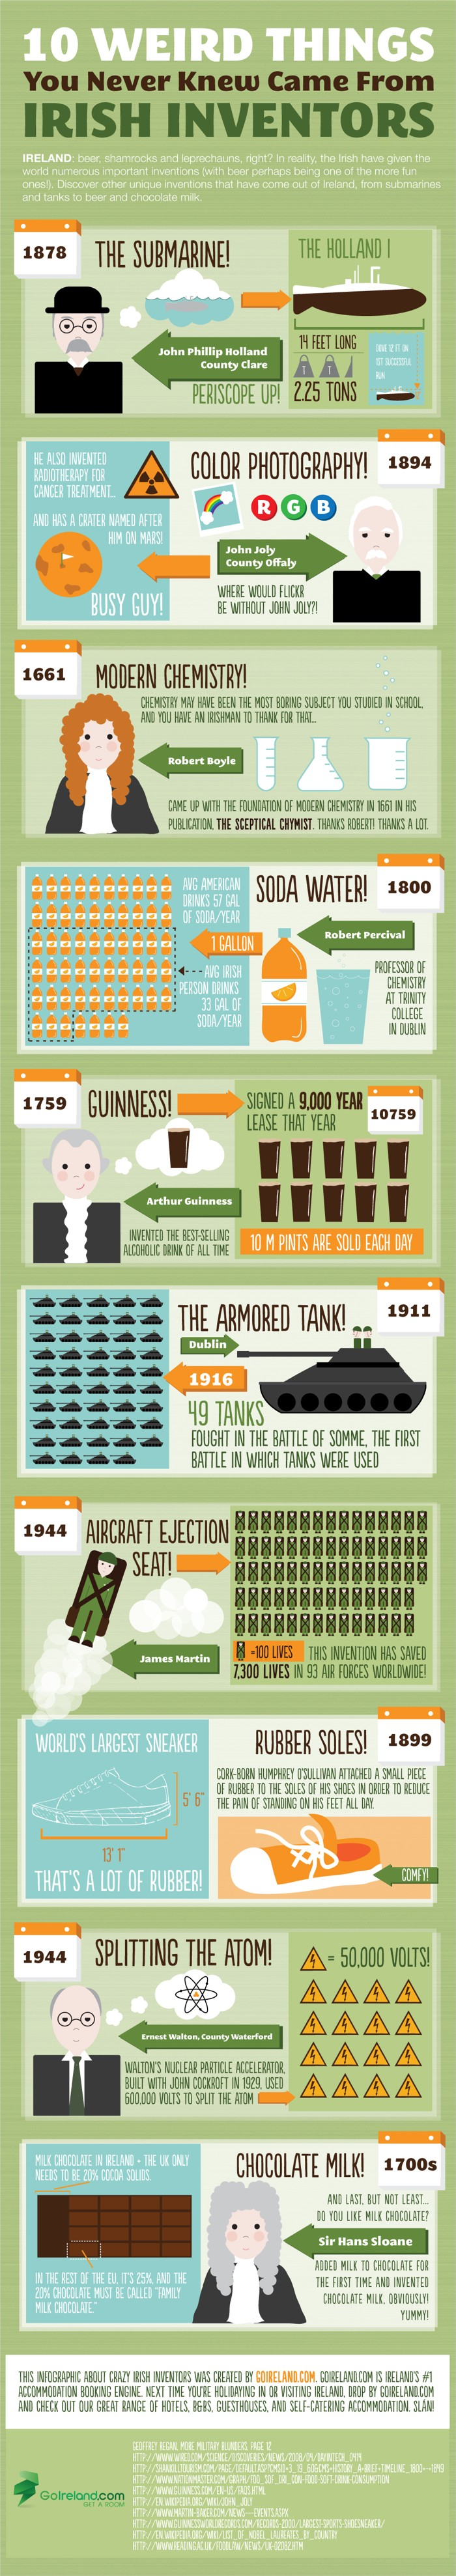 Top Inventions Made From the Irish